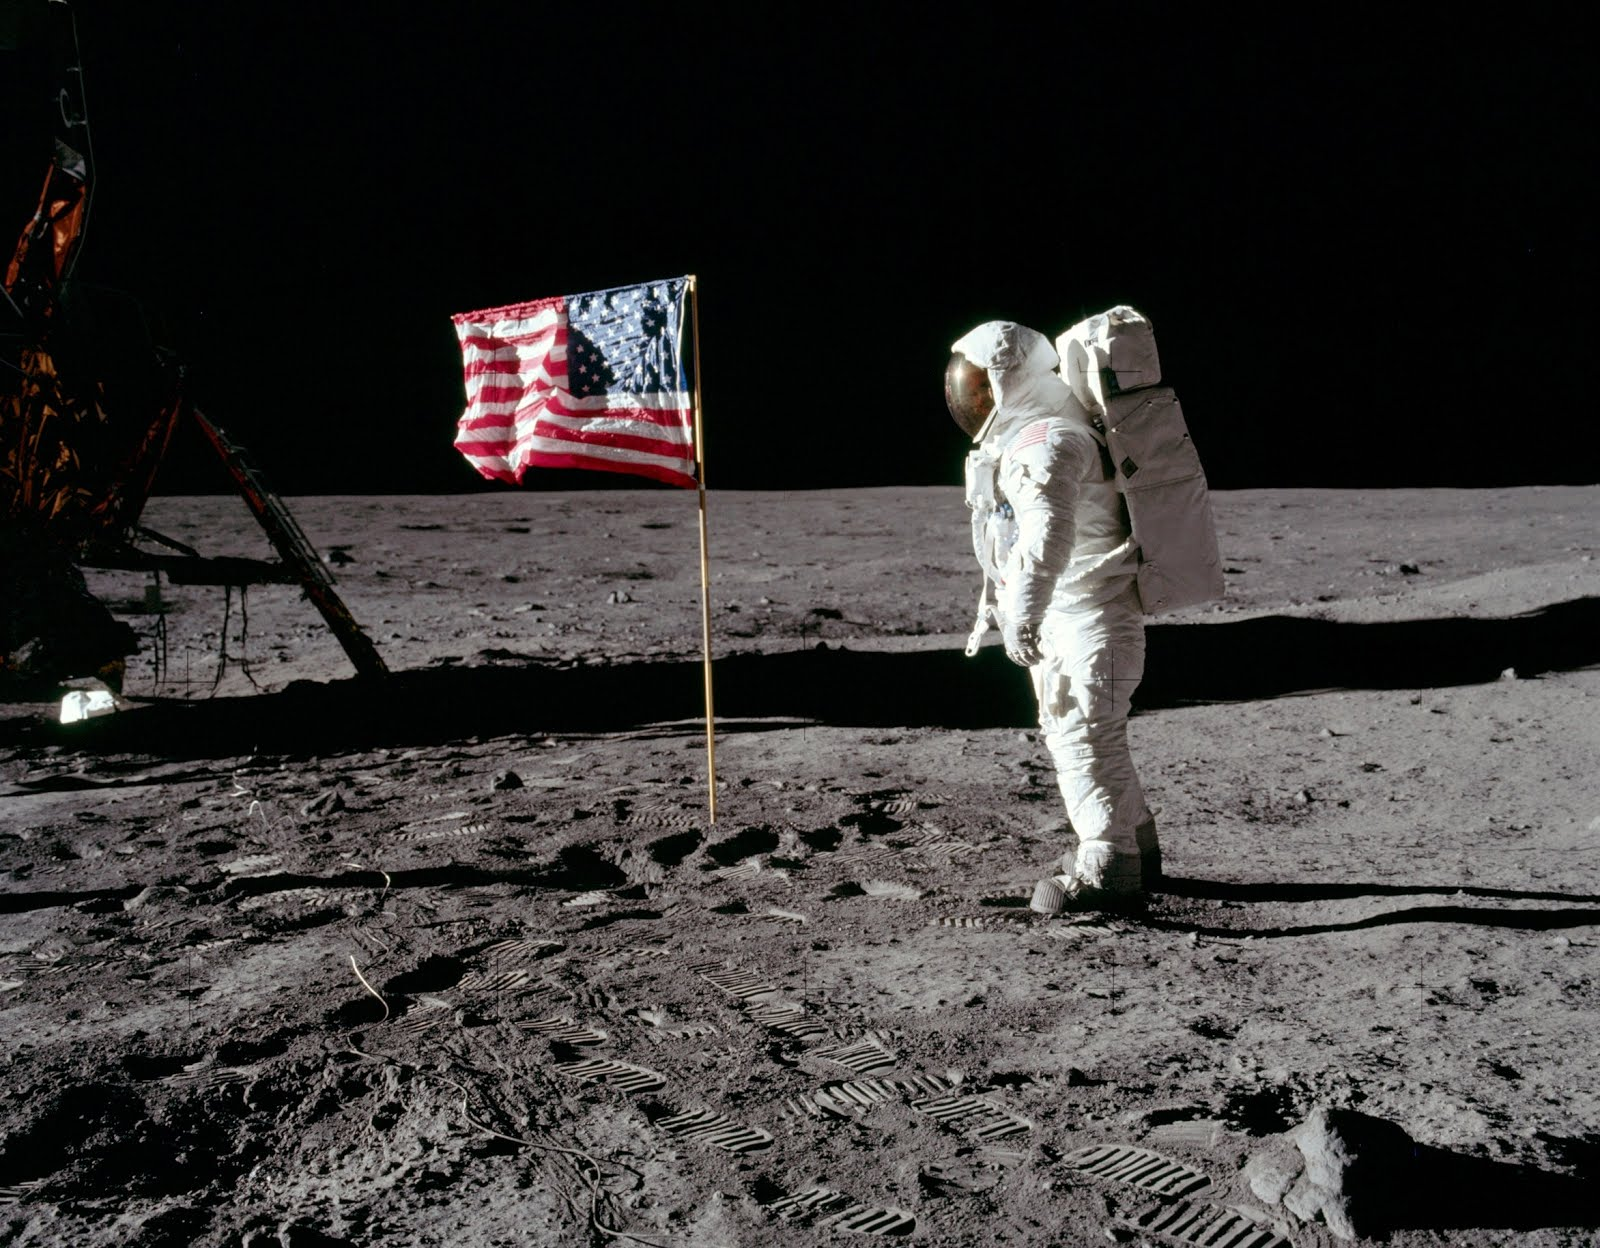 Apollo 11 Moon Walk Remembered